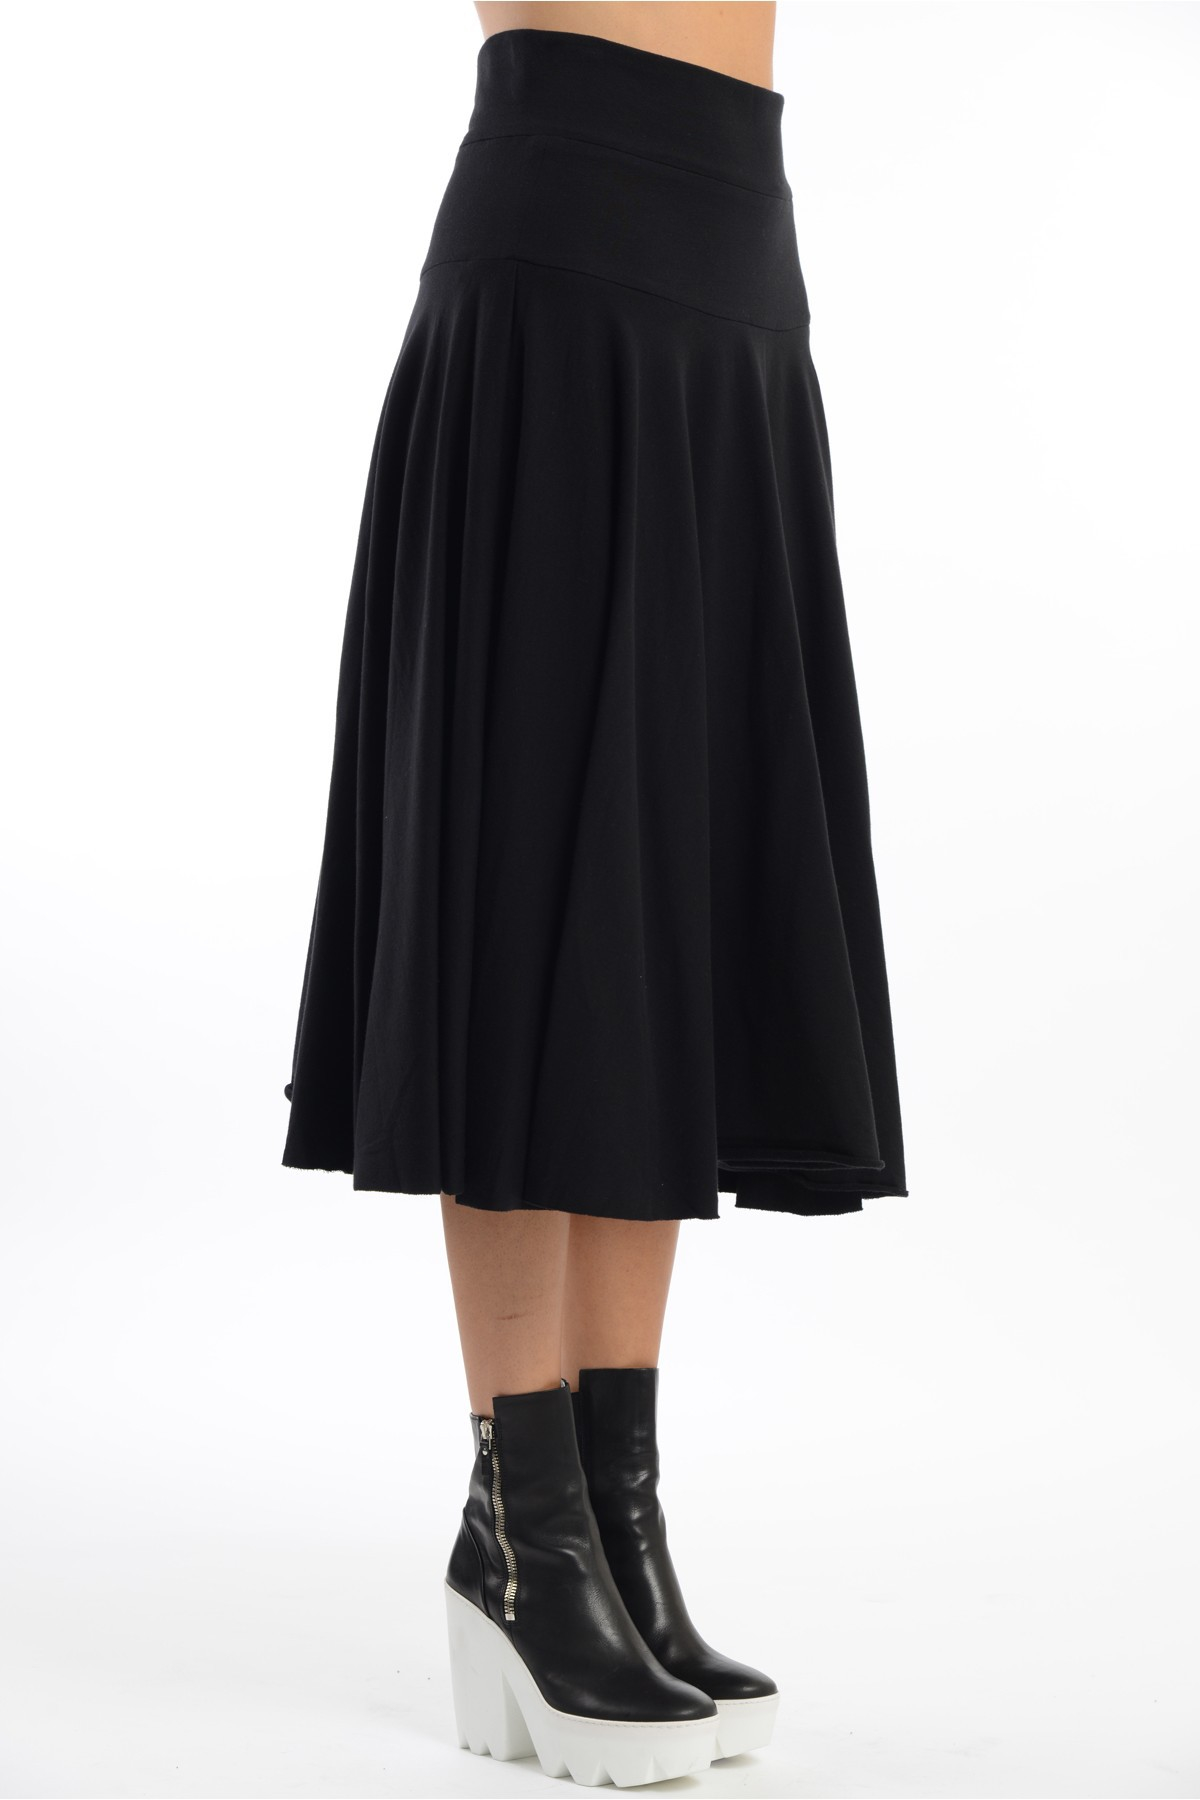 norma kamali high waisted circle skirt in black lyst